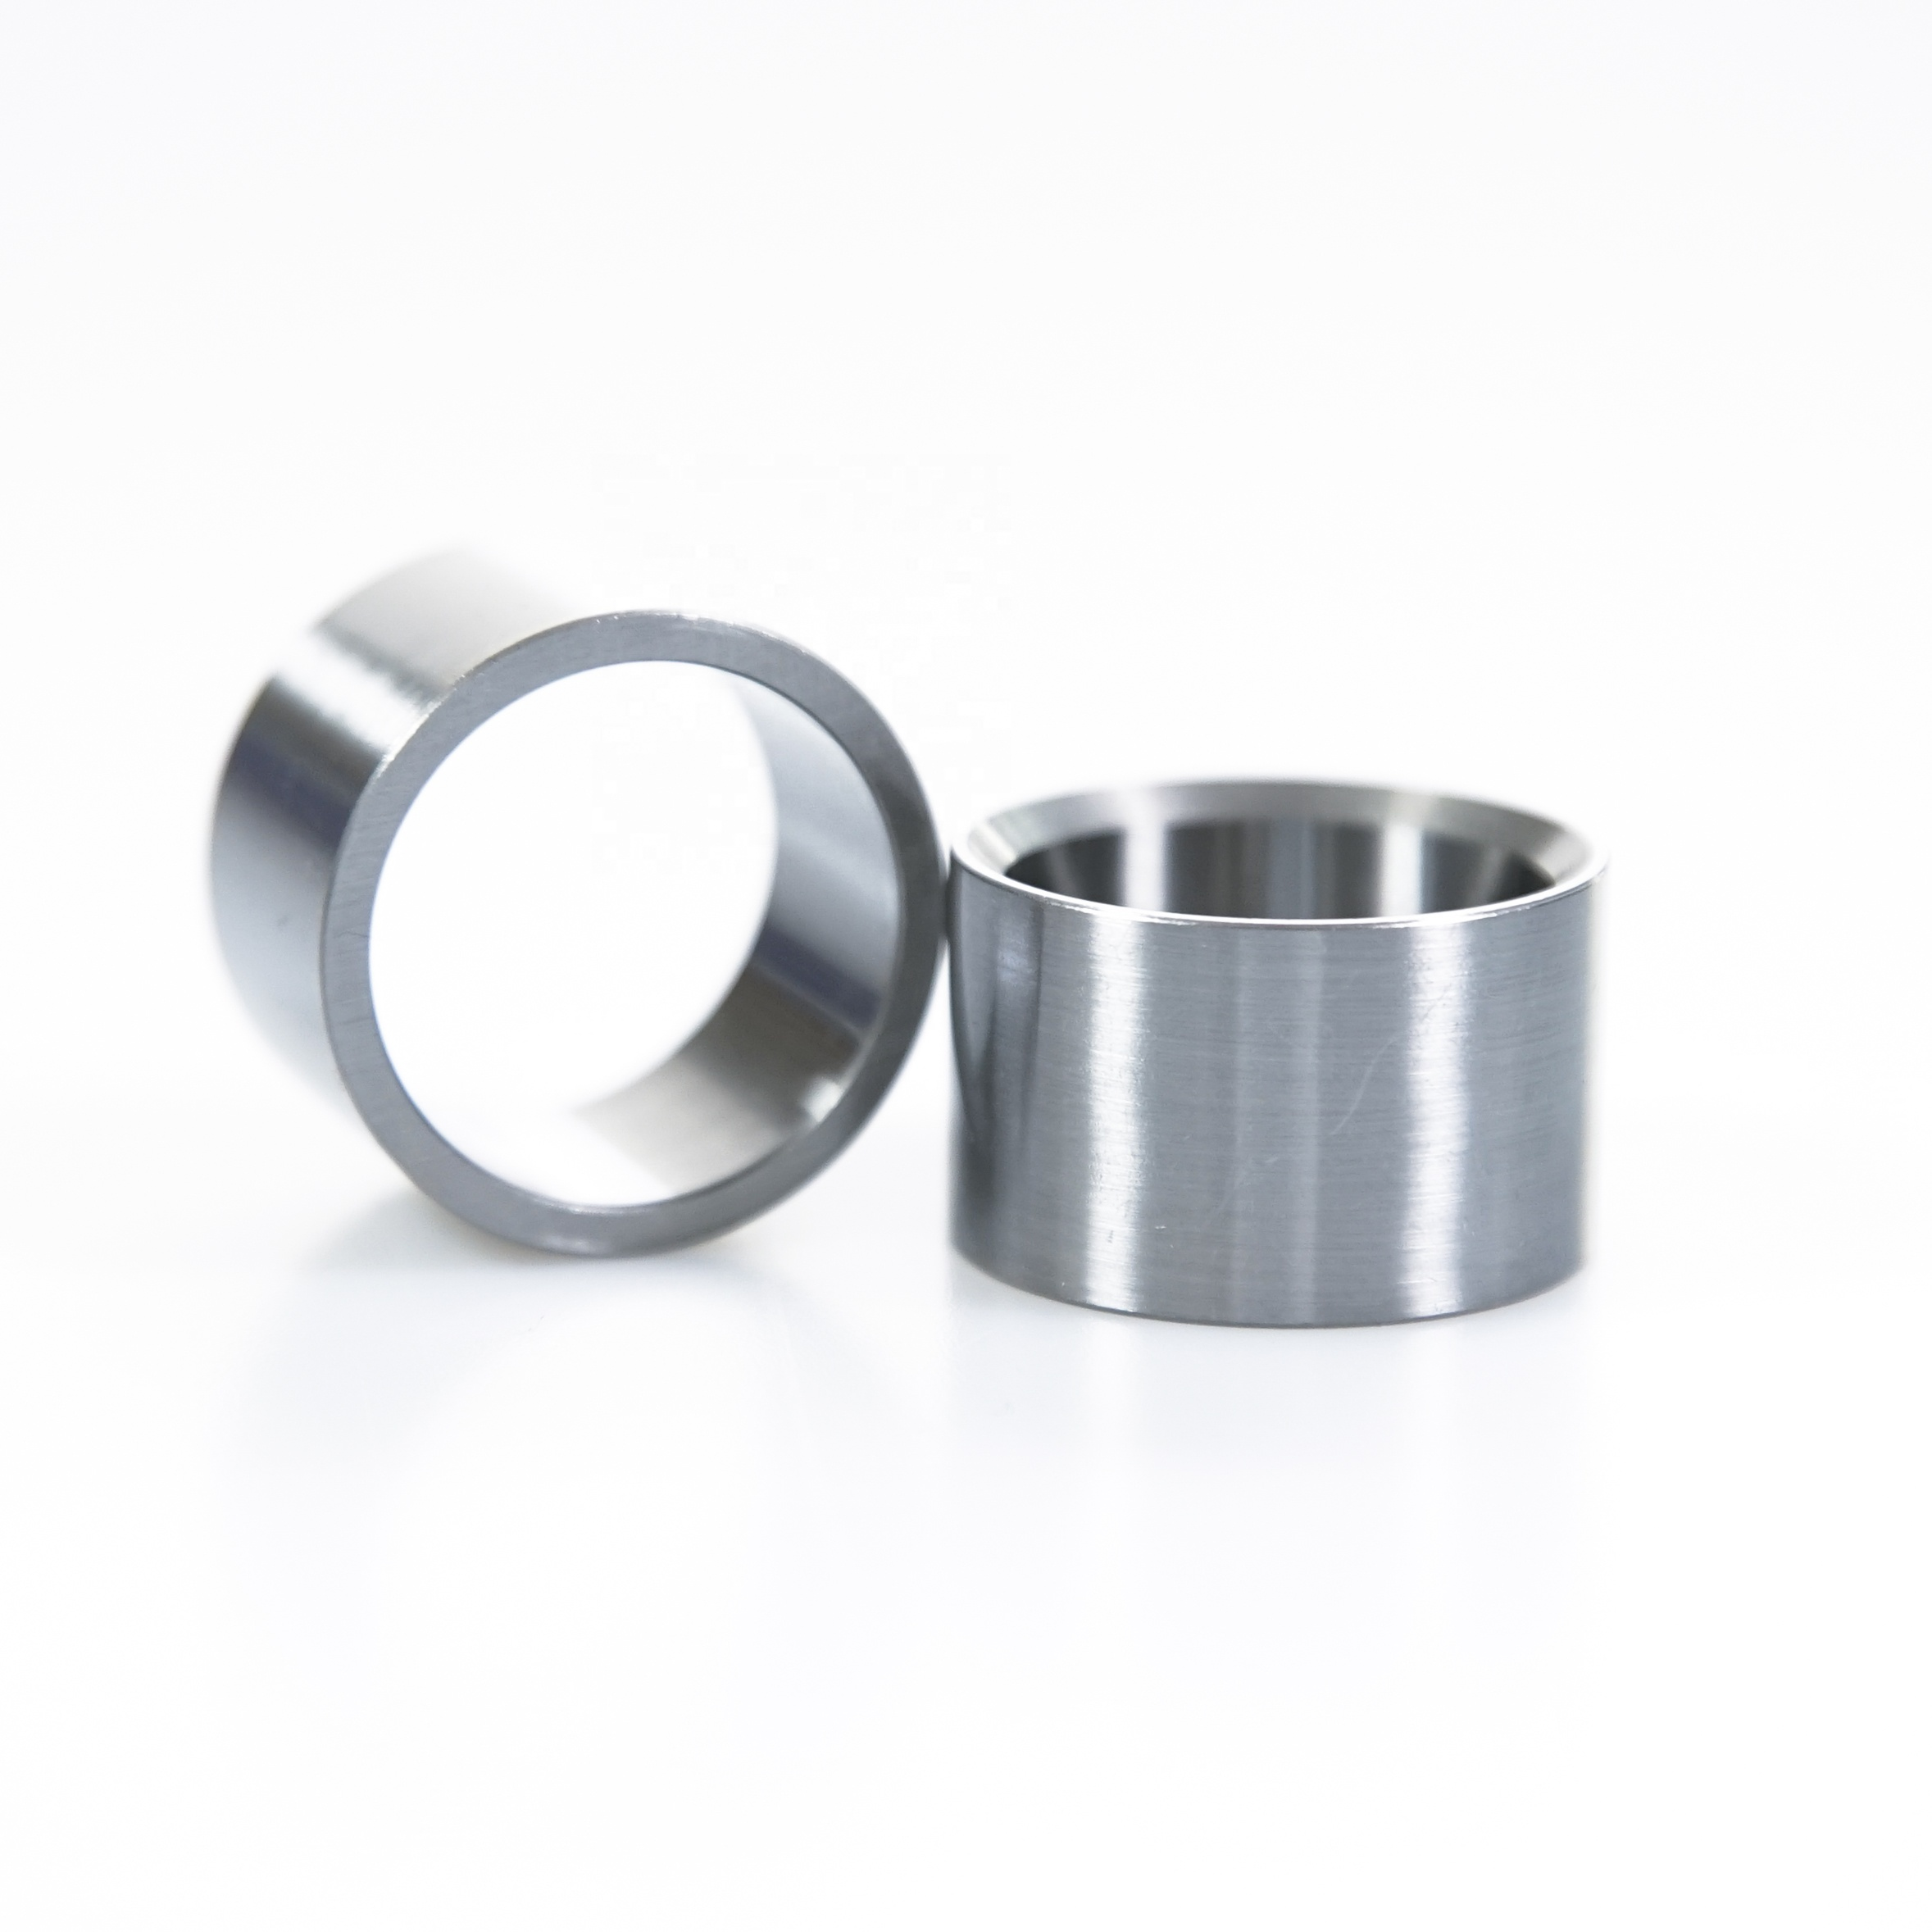 China manufacturers through ISO 9001bushings high precision, high quality, low price axle sleeve 65*75*35 Support for custom